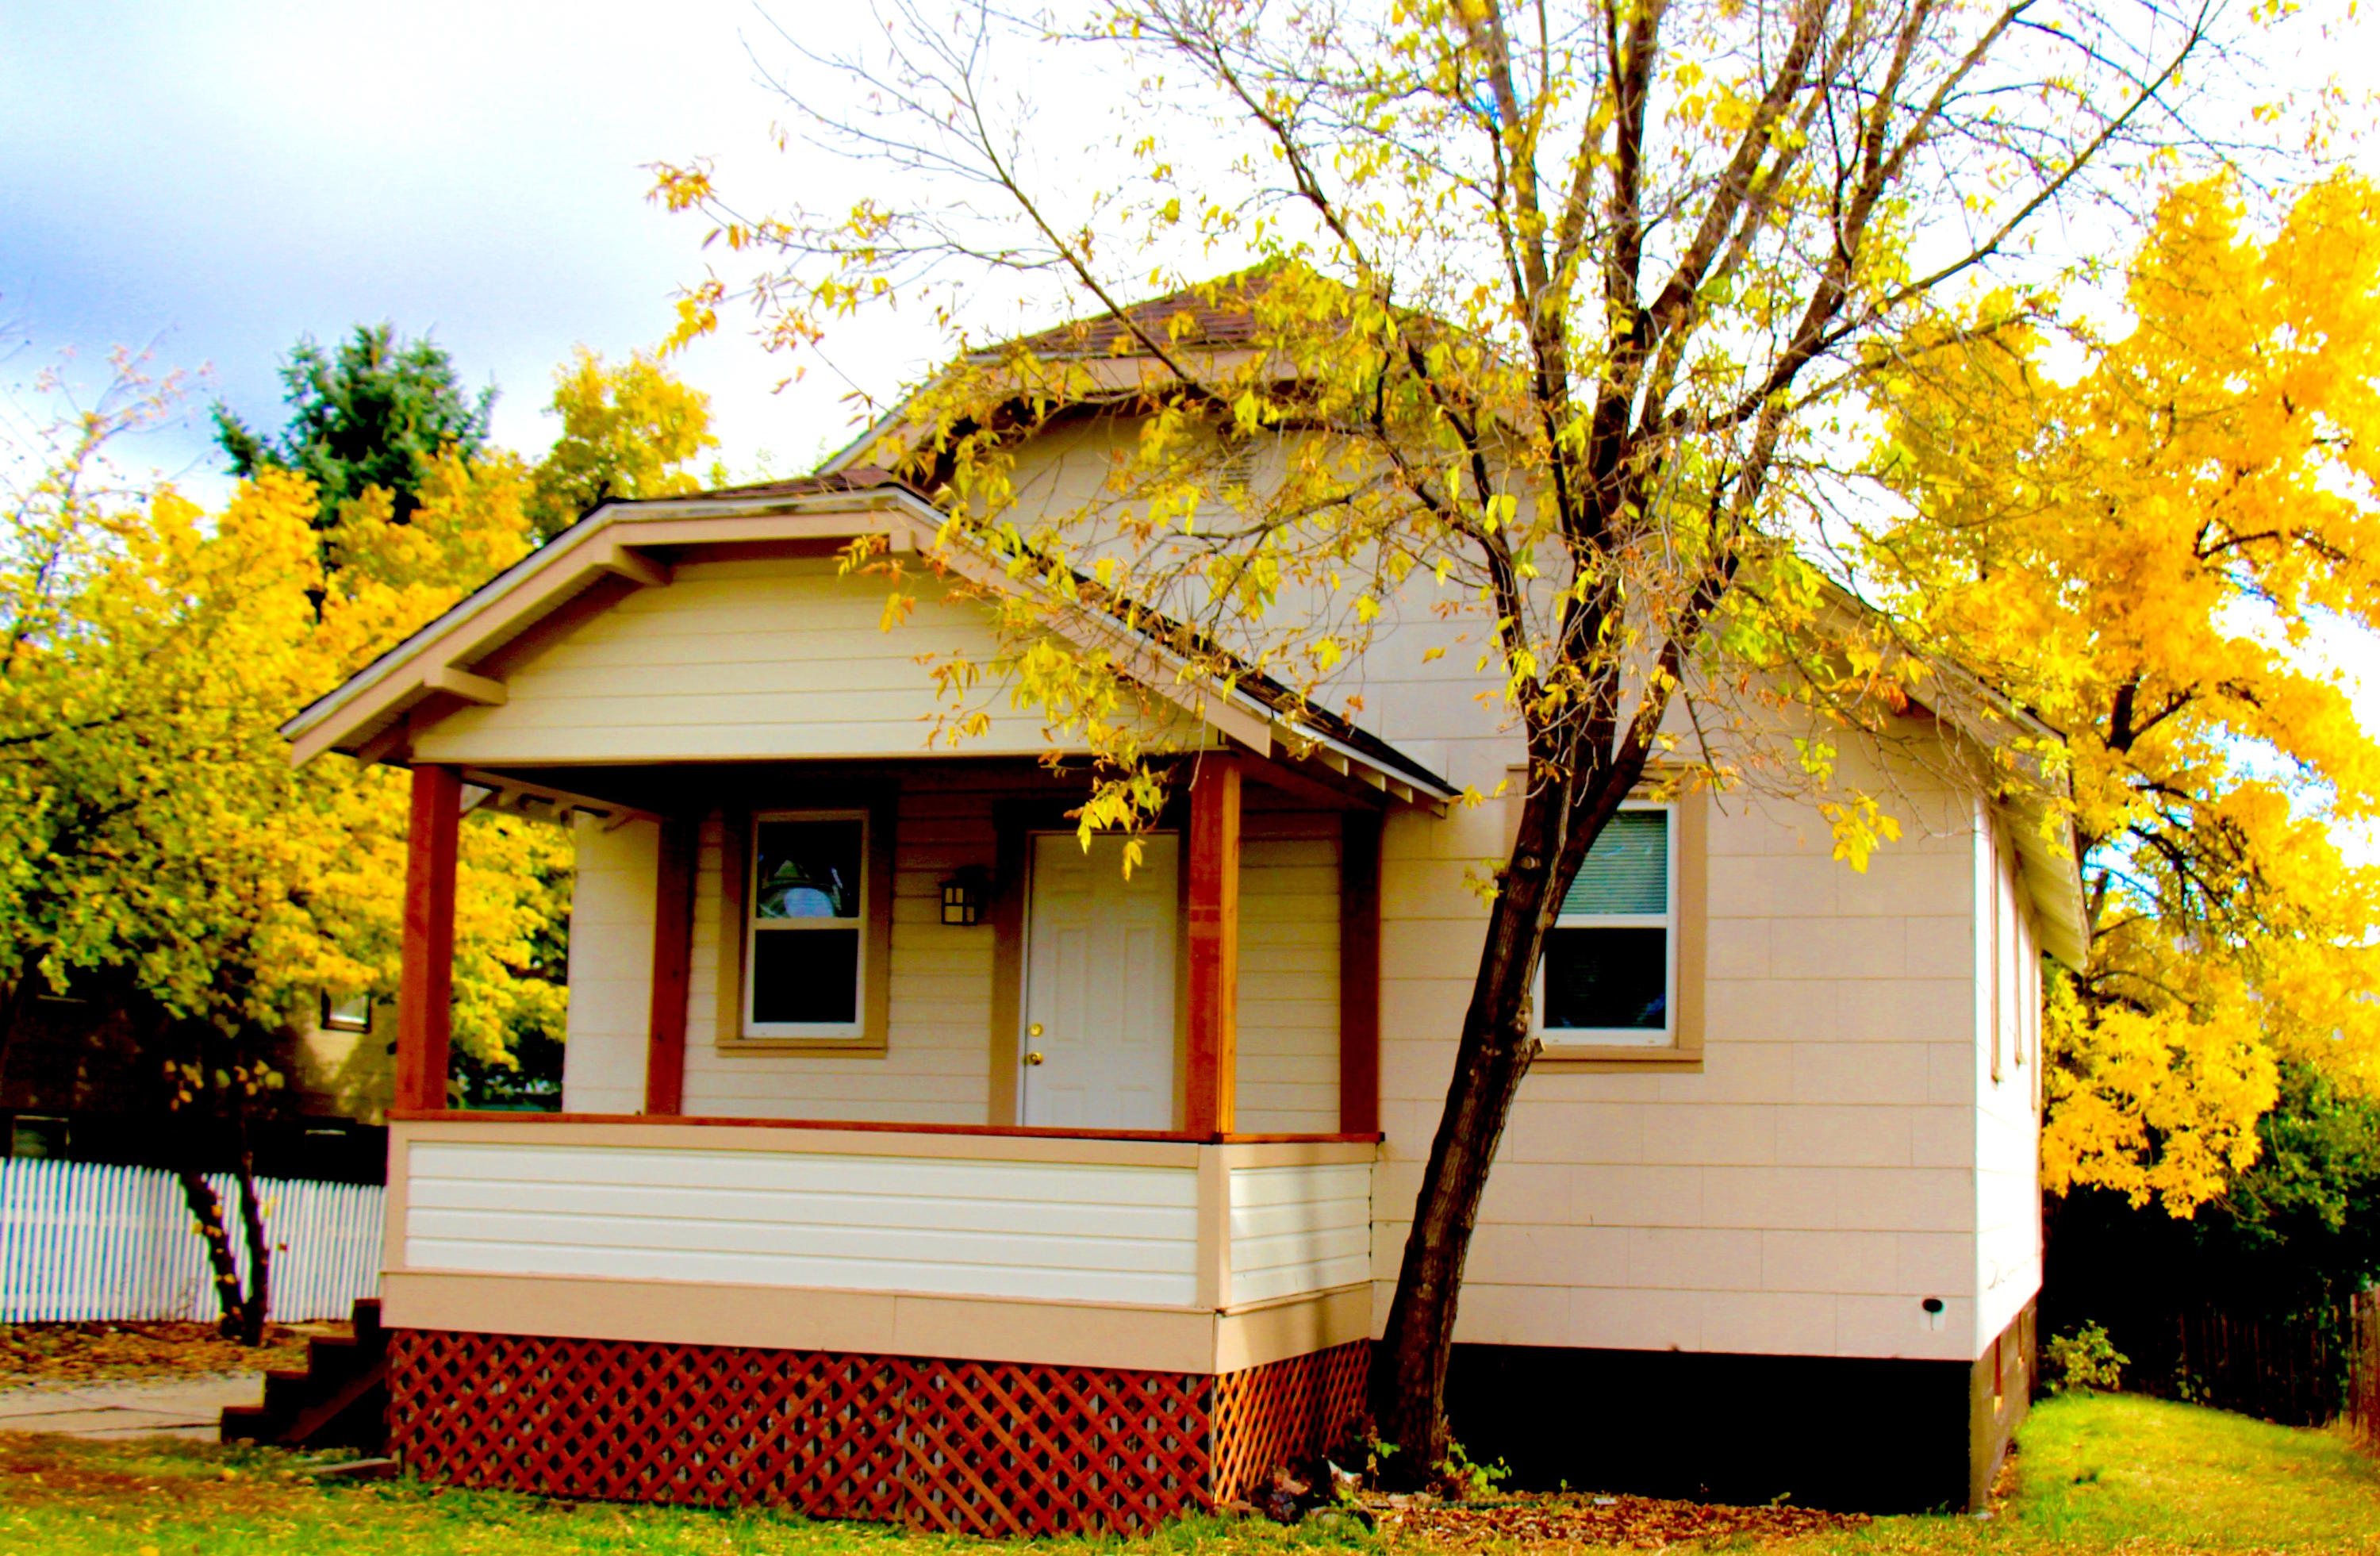 624 6th Street, Sheridan, Wyoming 82801, 2 Bedrooms Bedrooms, ,1 BathroomBathrooms,Residential,For Sale,6th,18-1096